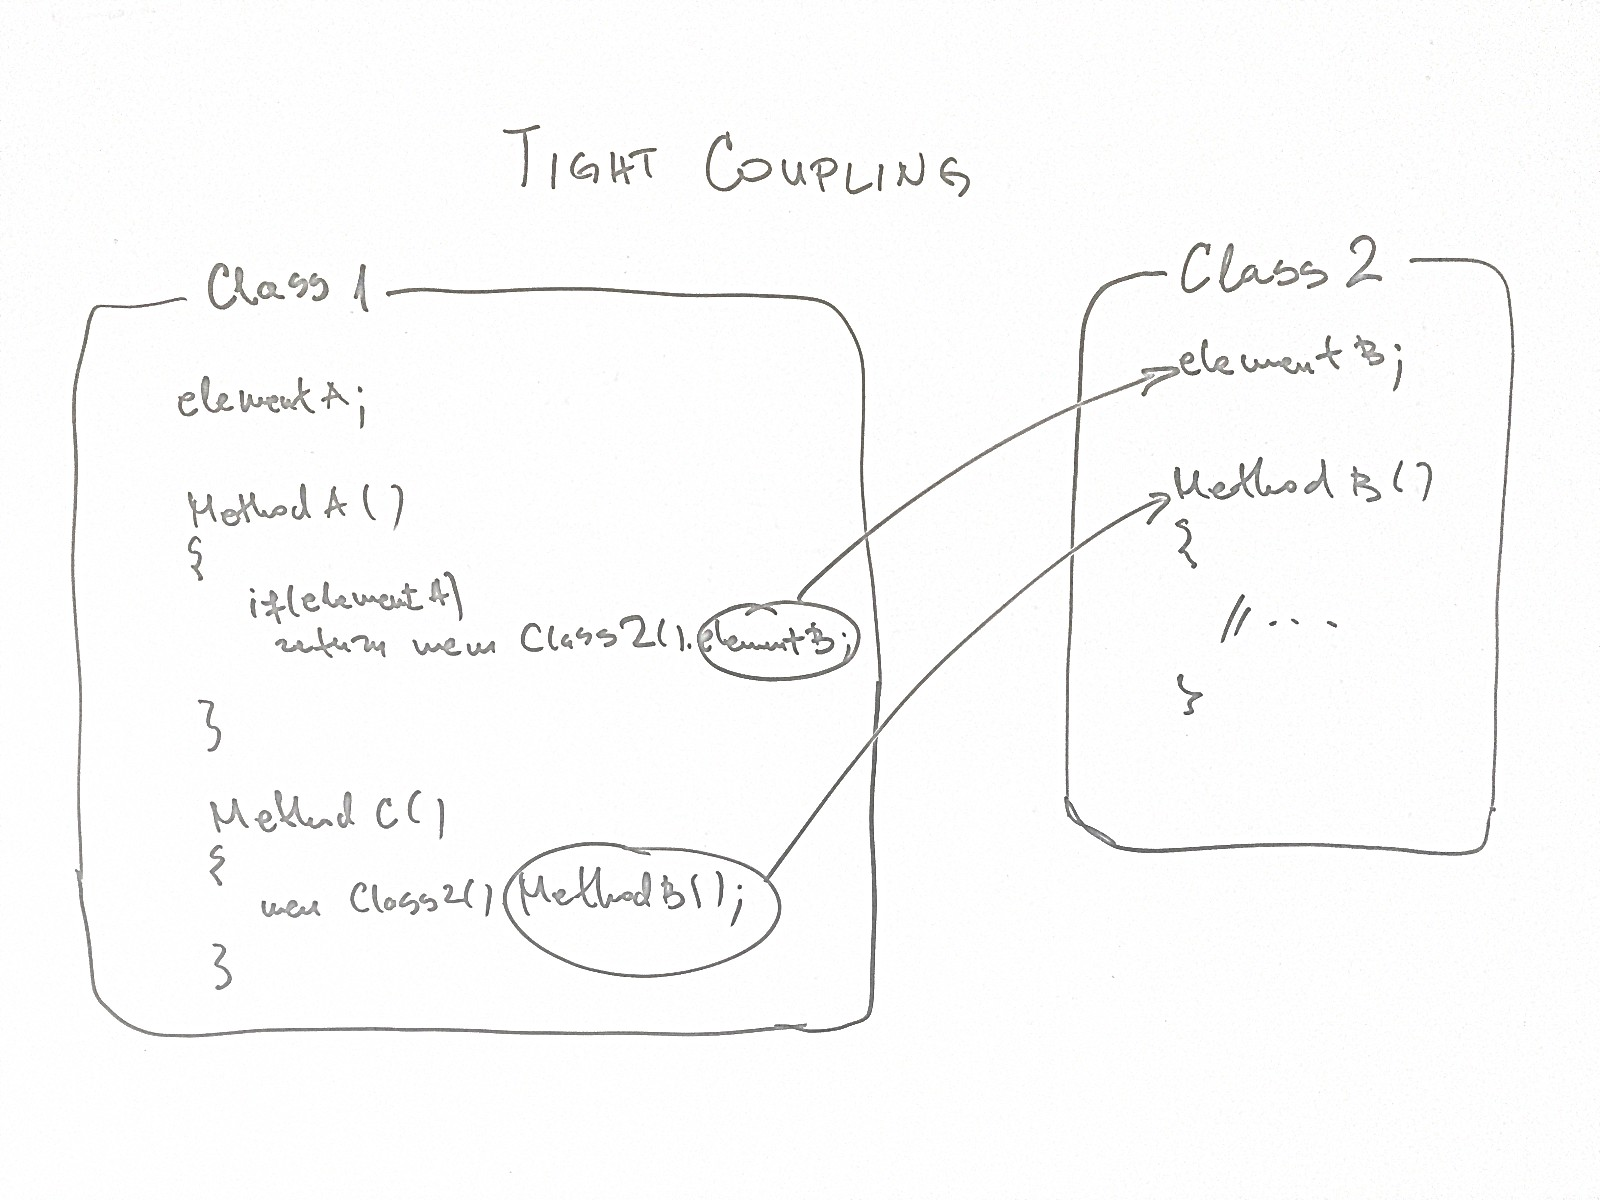 what is the difference between cohesion and coupling in software engineering